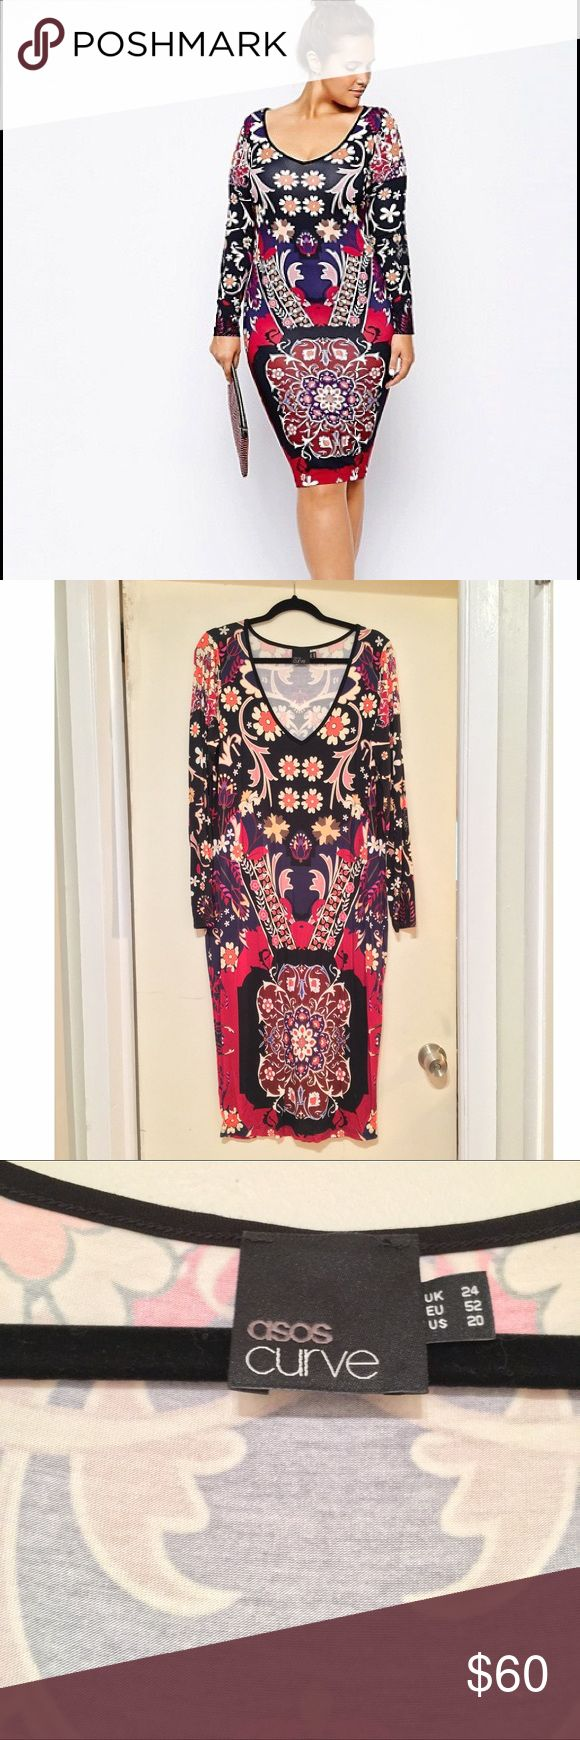 ASOS Curve Bodycon Dress in Folk Floral I am in love with dress. I almost don't want to see it go. Perfect everything. Light material, coolest print, hot neckline. 😻 ASOS Curve Dresses